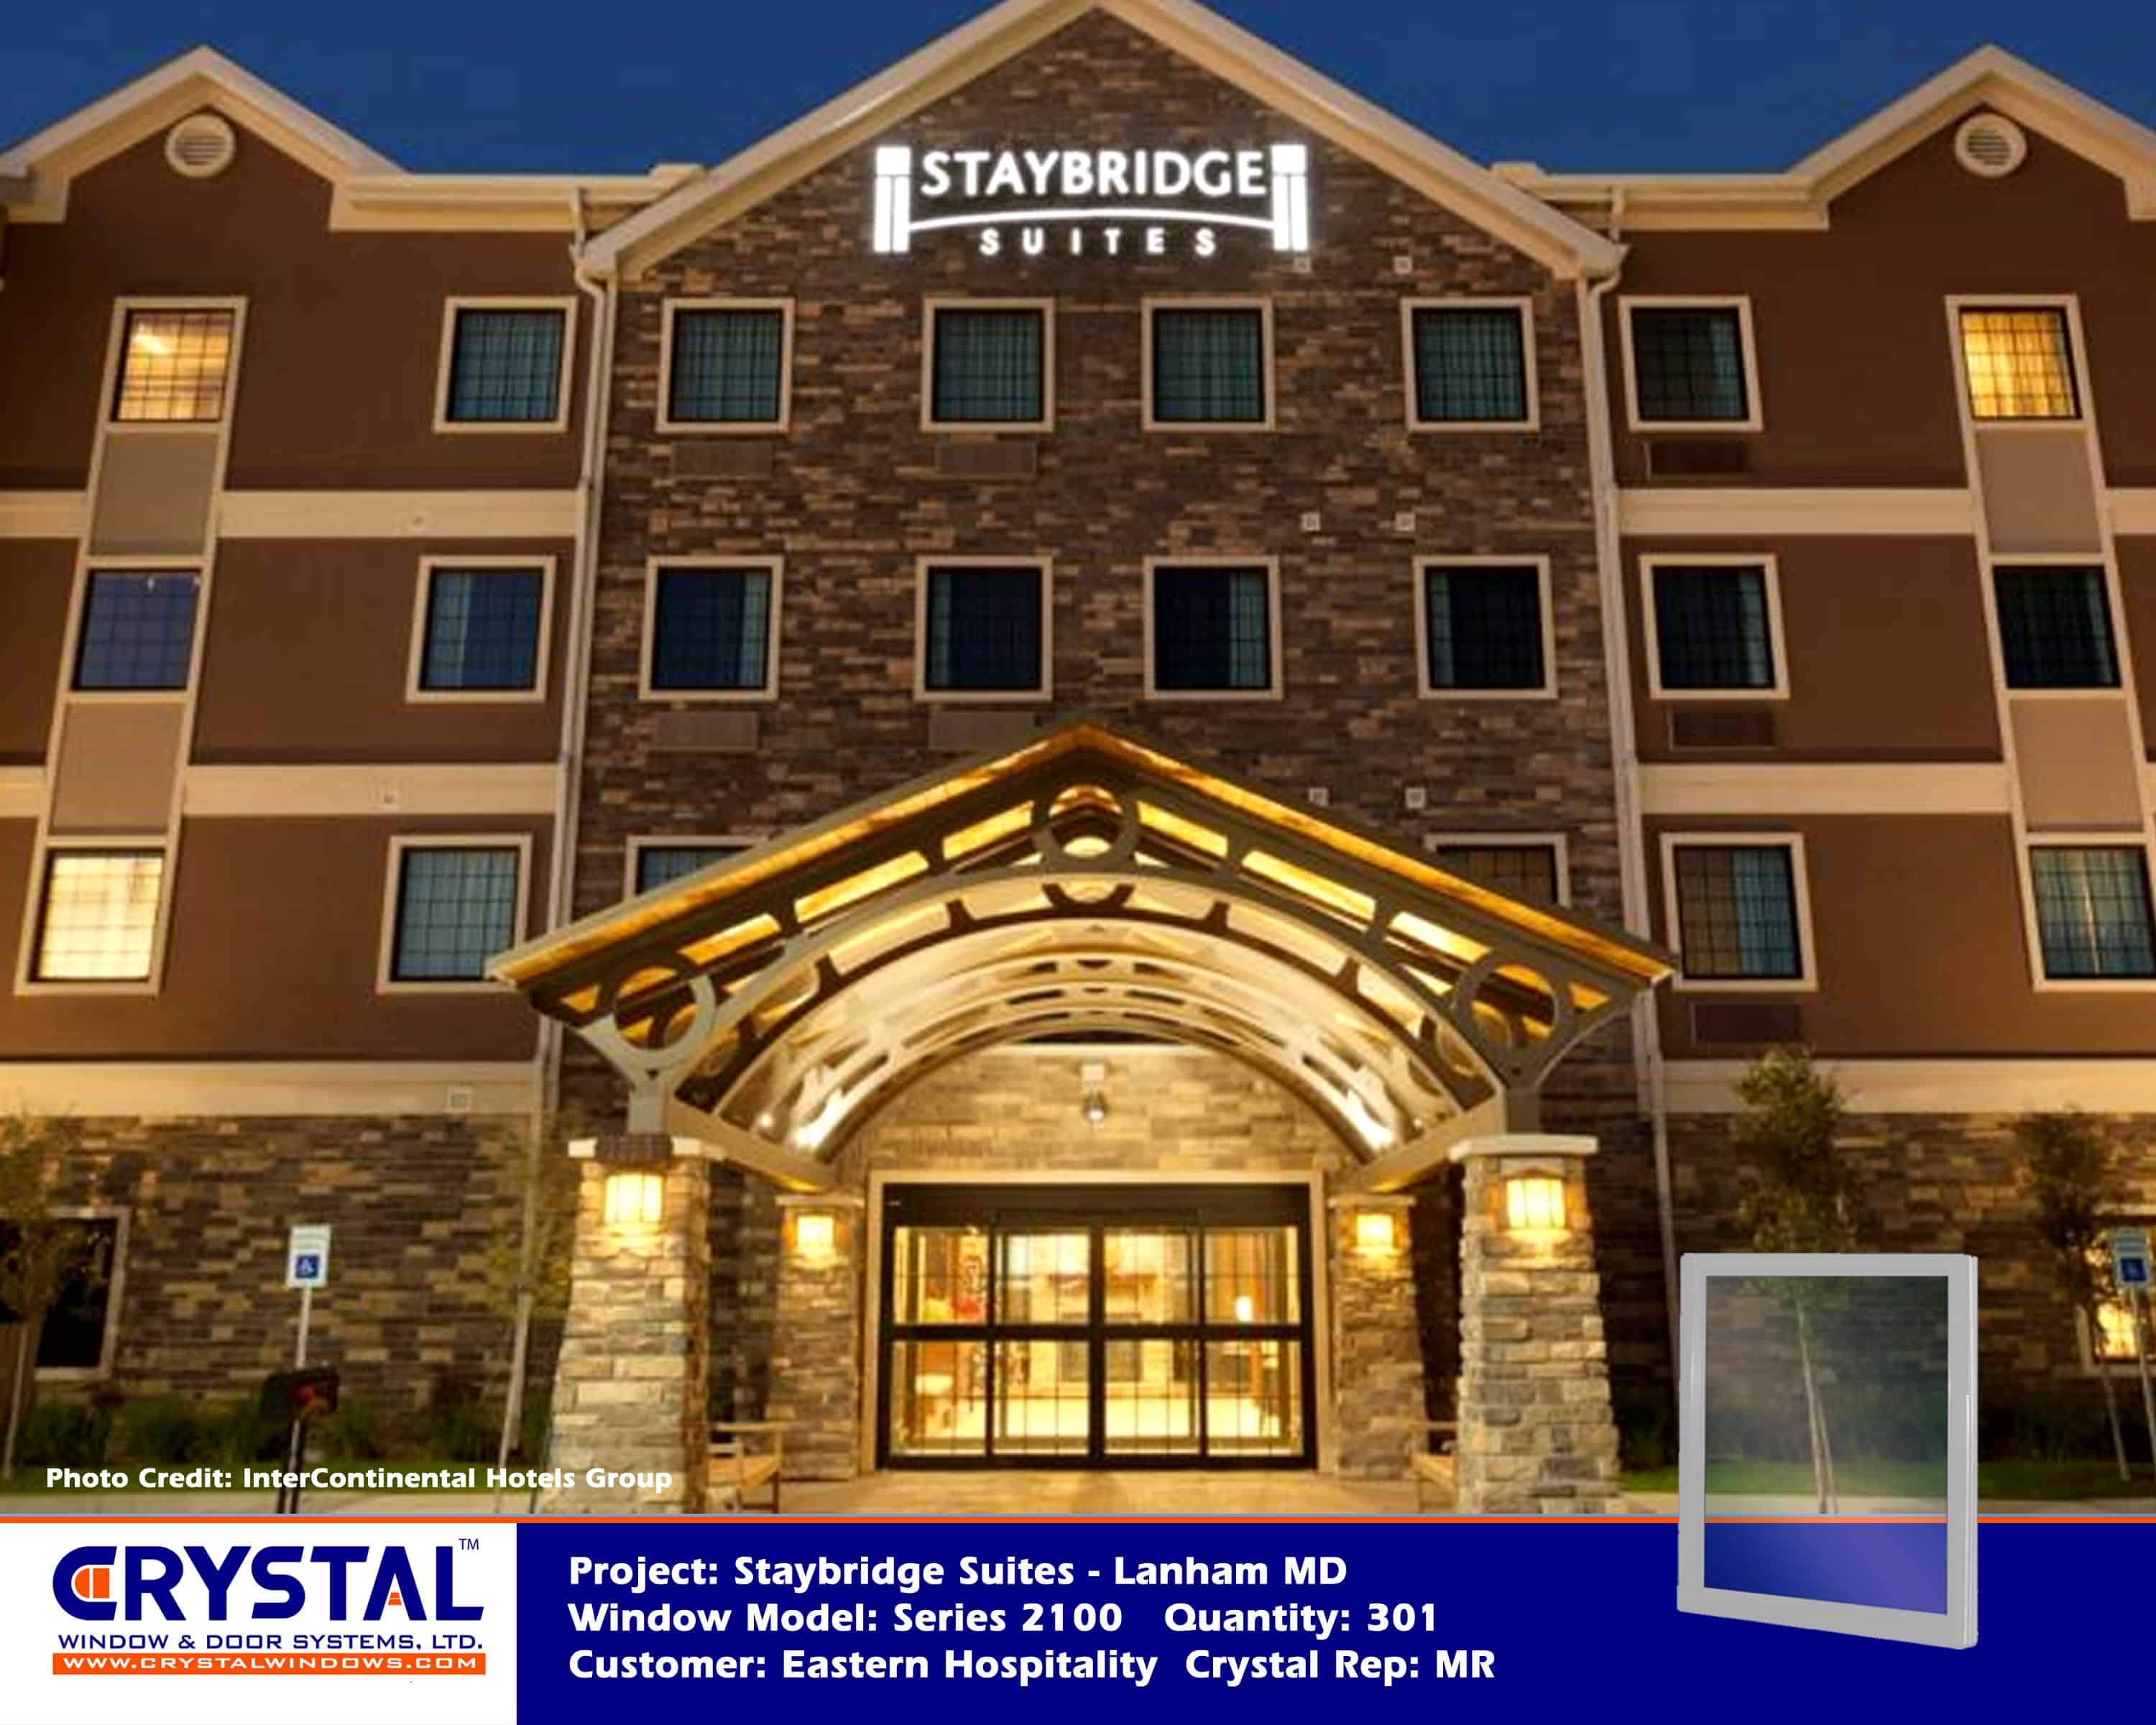 Staybridge Suites Lanham Md Crystal Windows Commercial